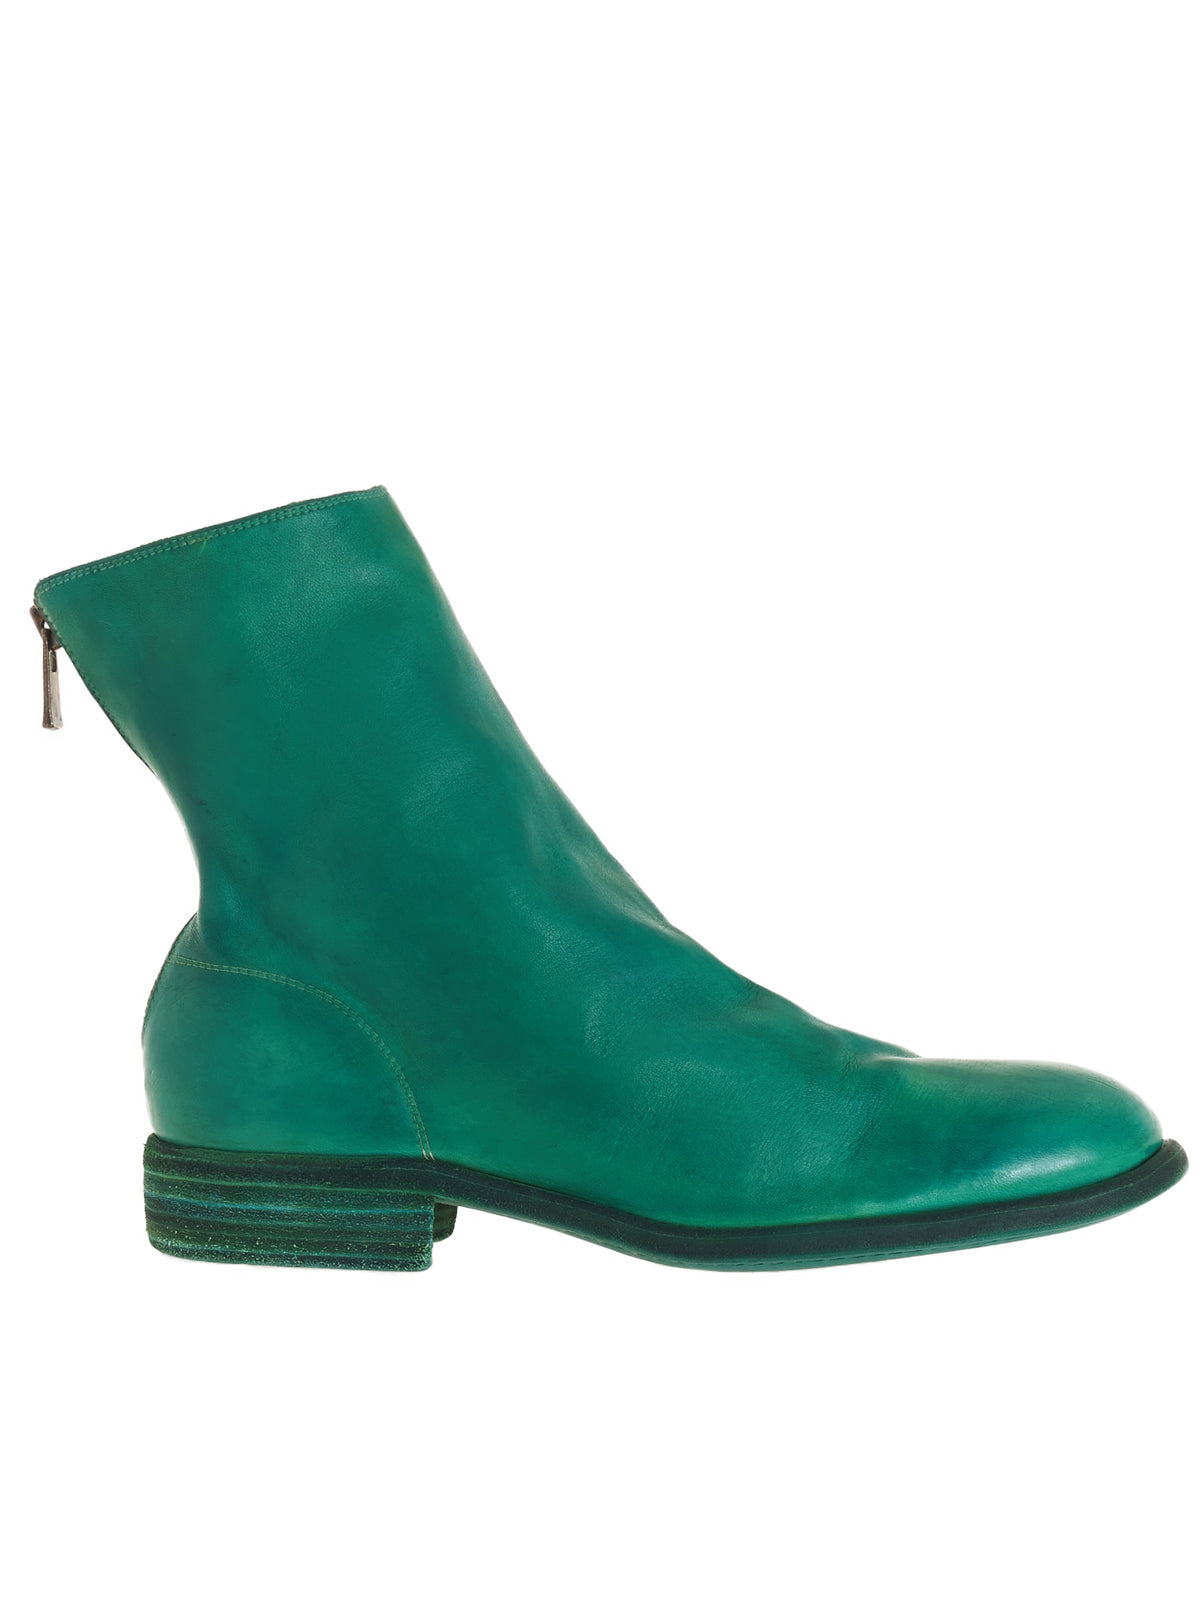 986 Horse Leather Boots (986-HORSE-FG-POISON-GREEN)